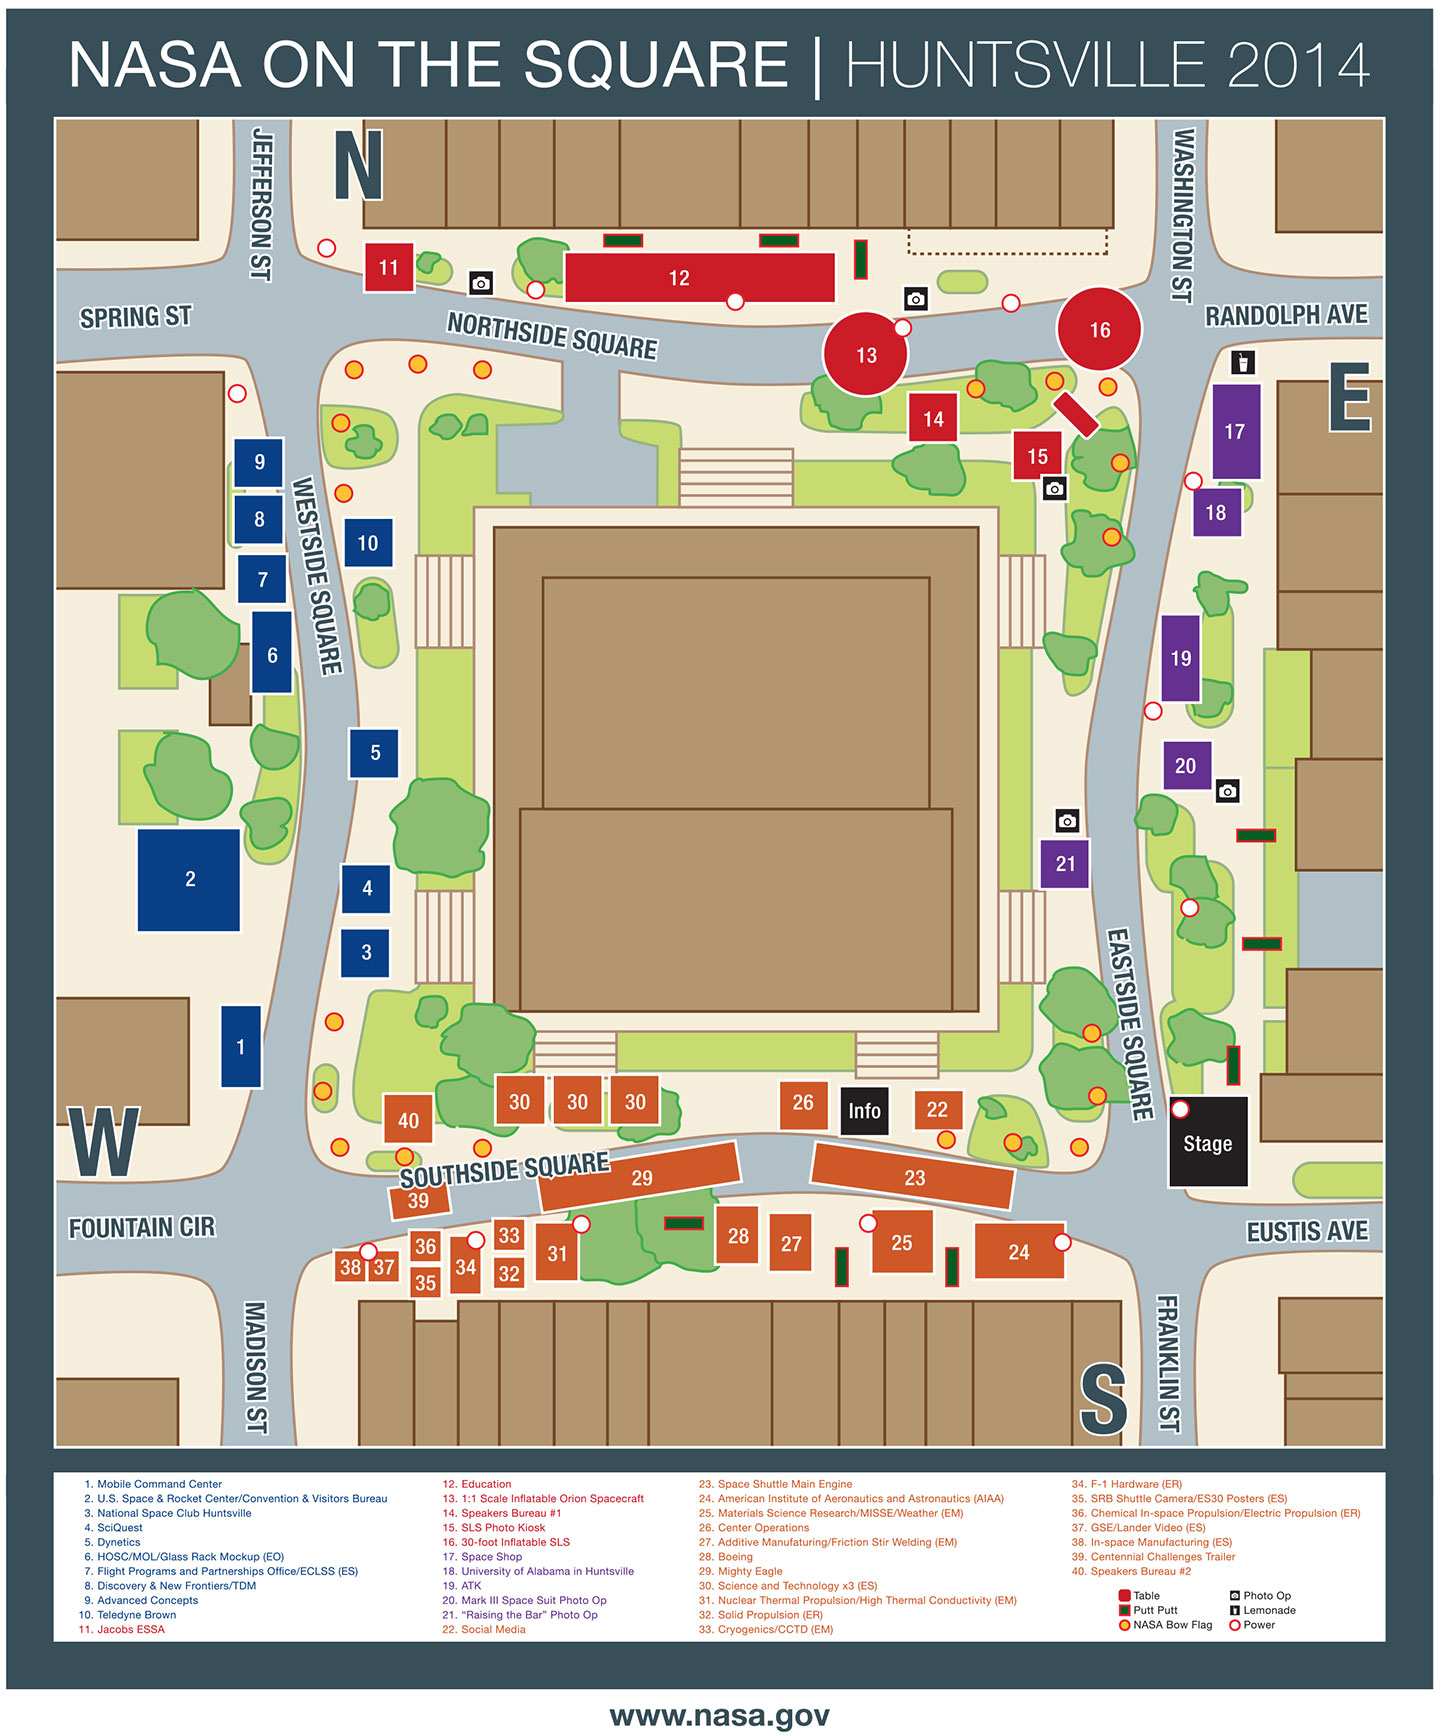 NASA on the Square layout